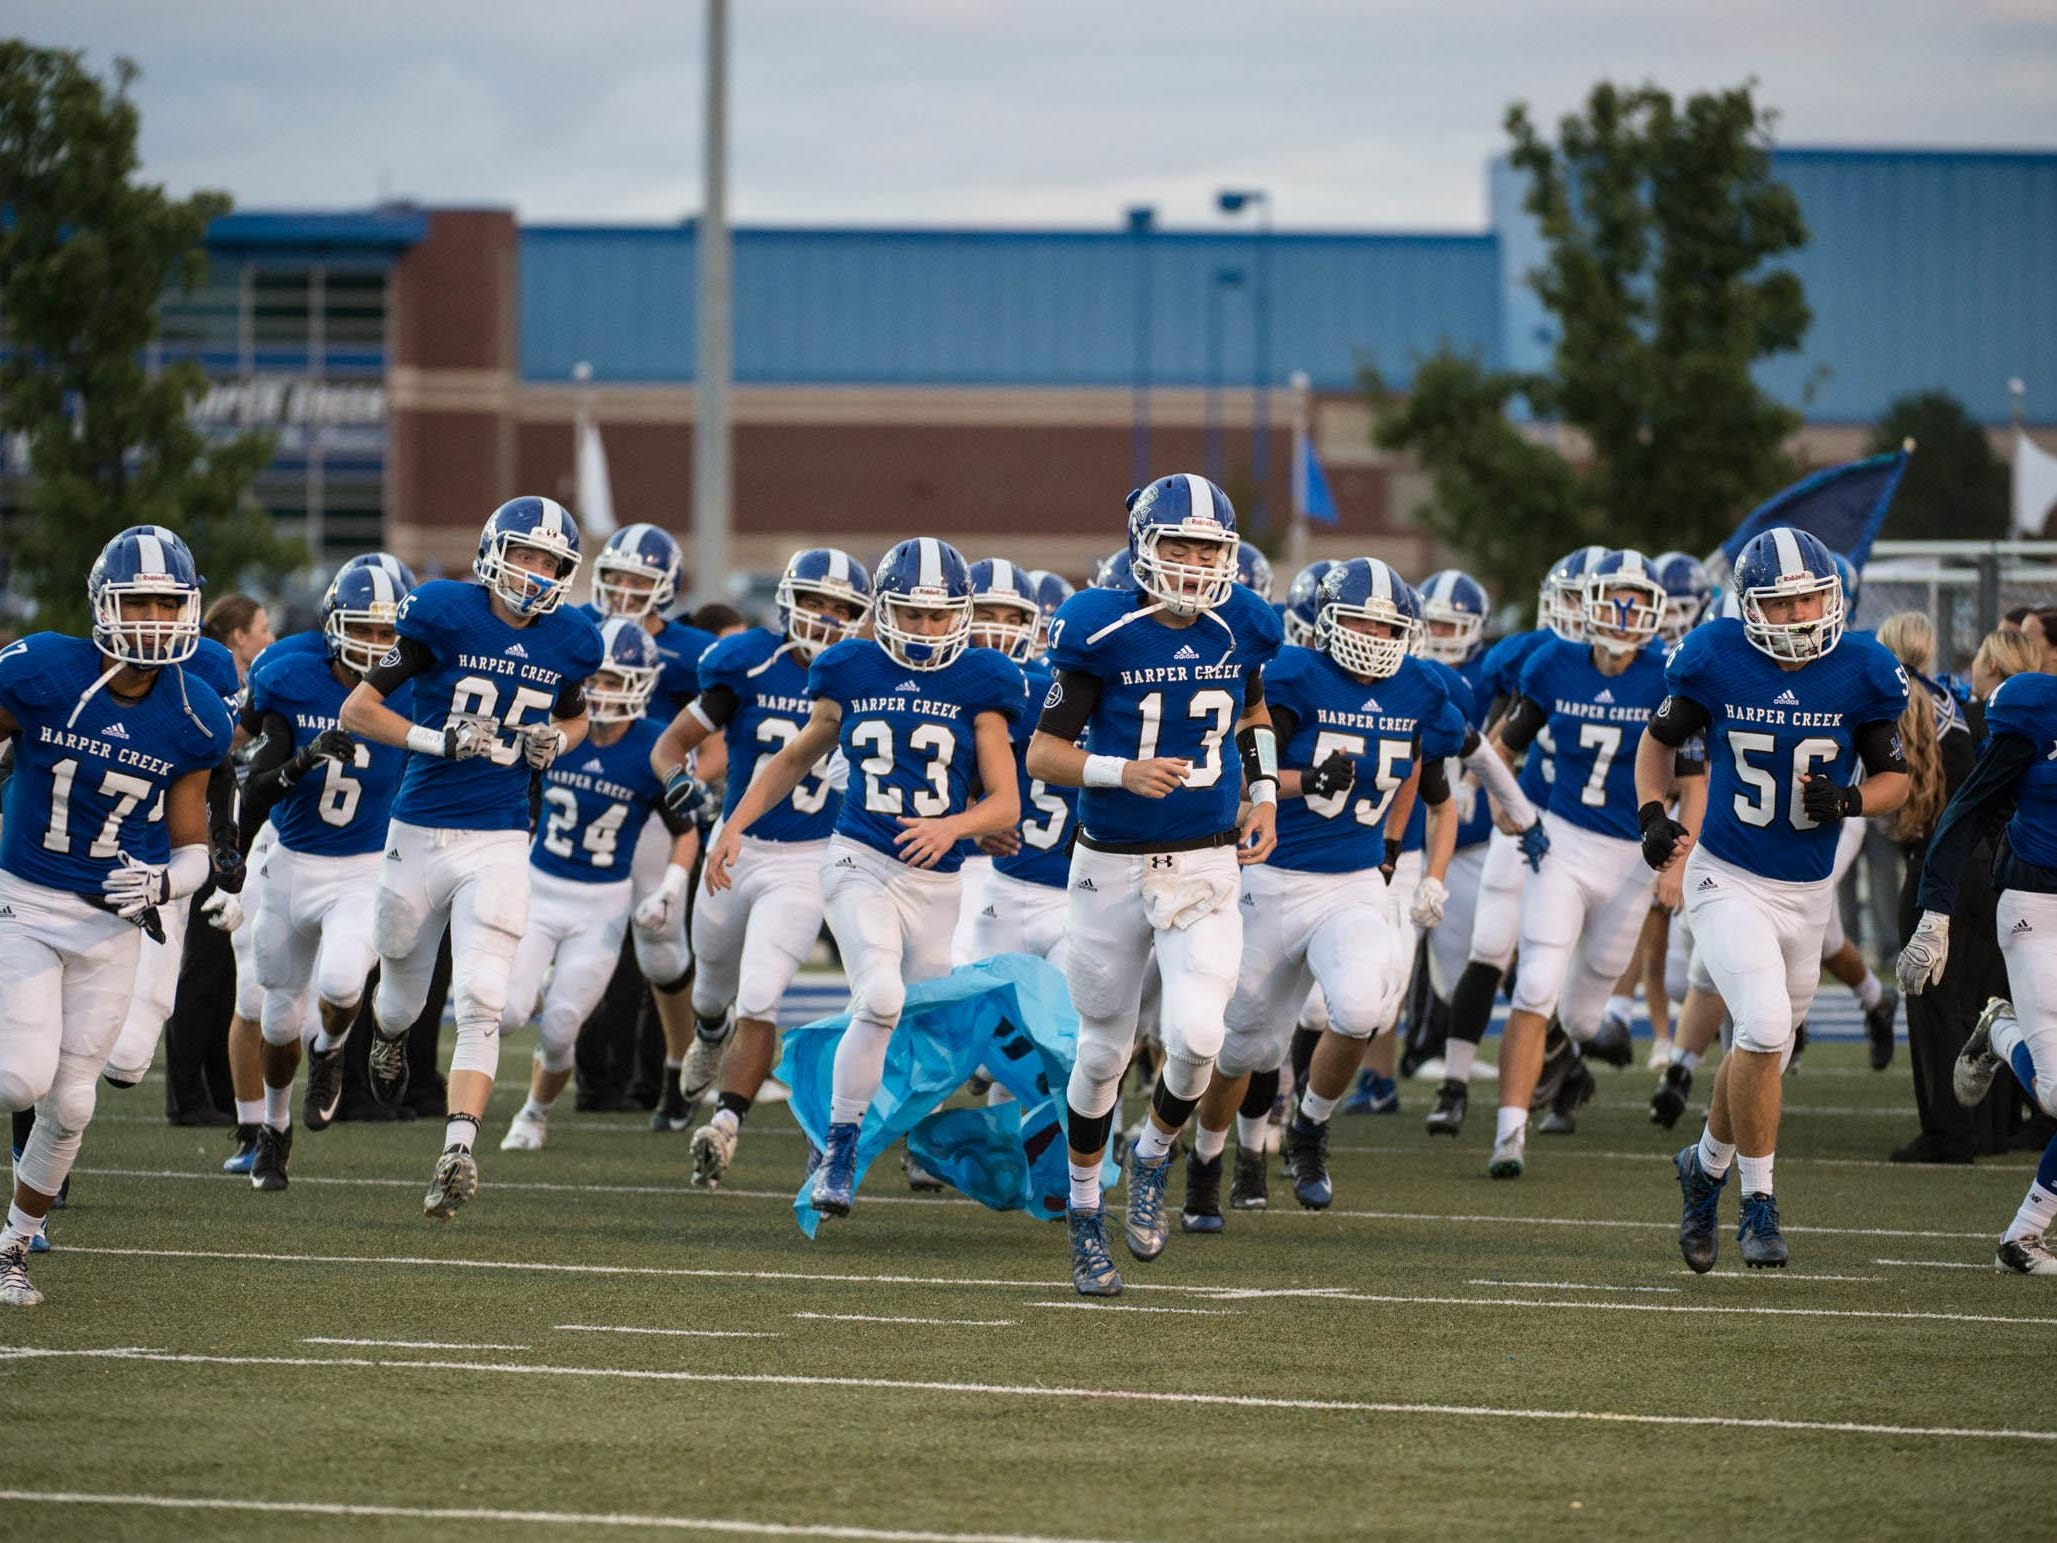 Harper Creek players take the field Friday evening against Coldwater.